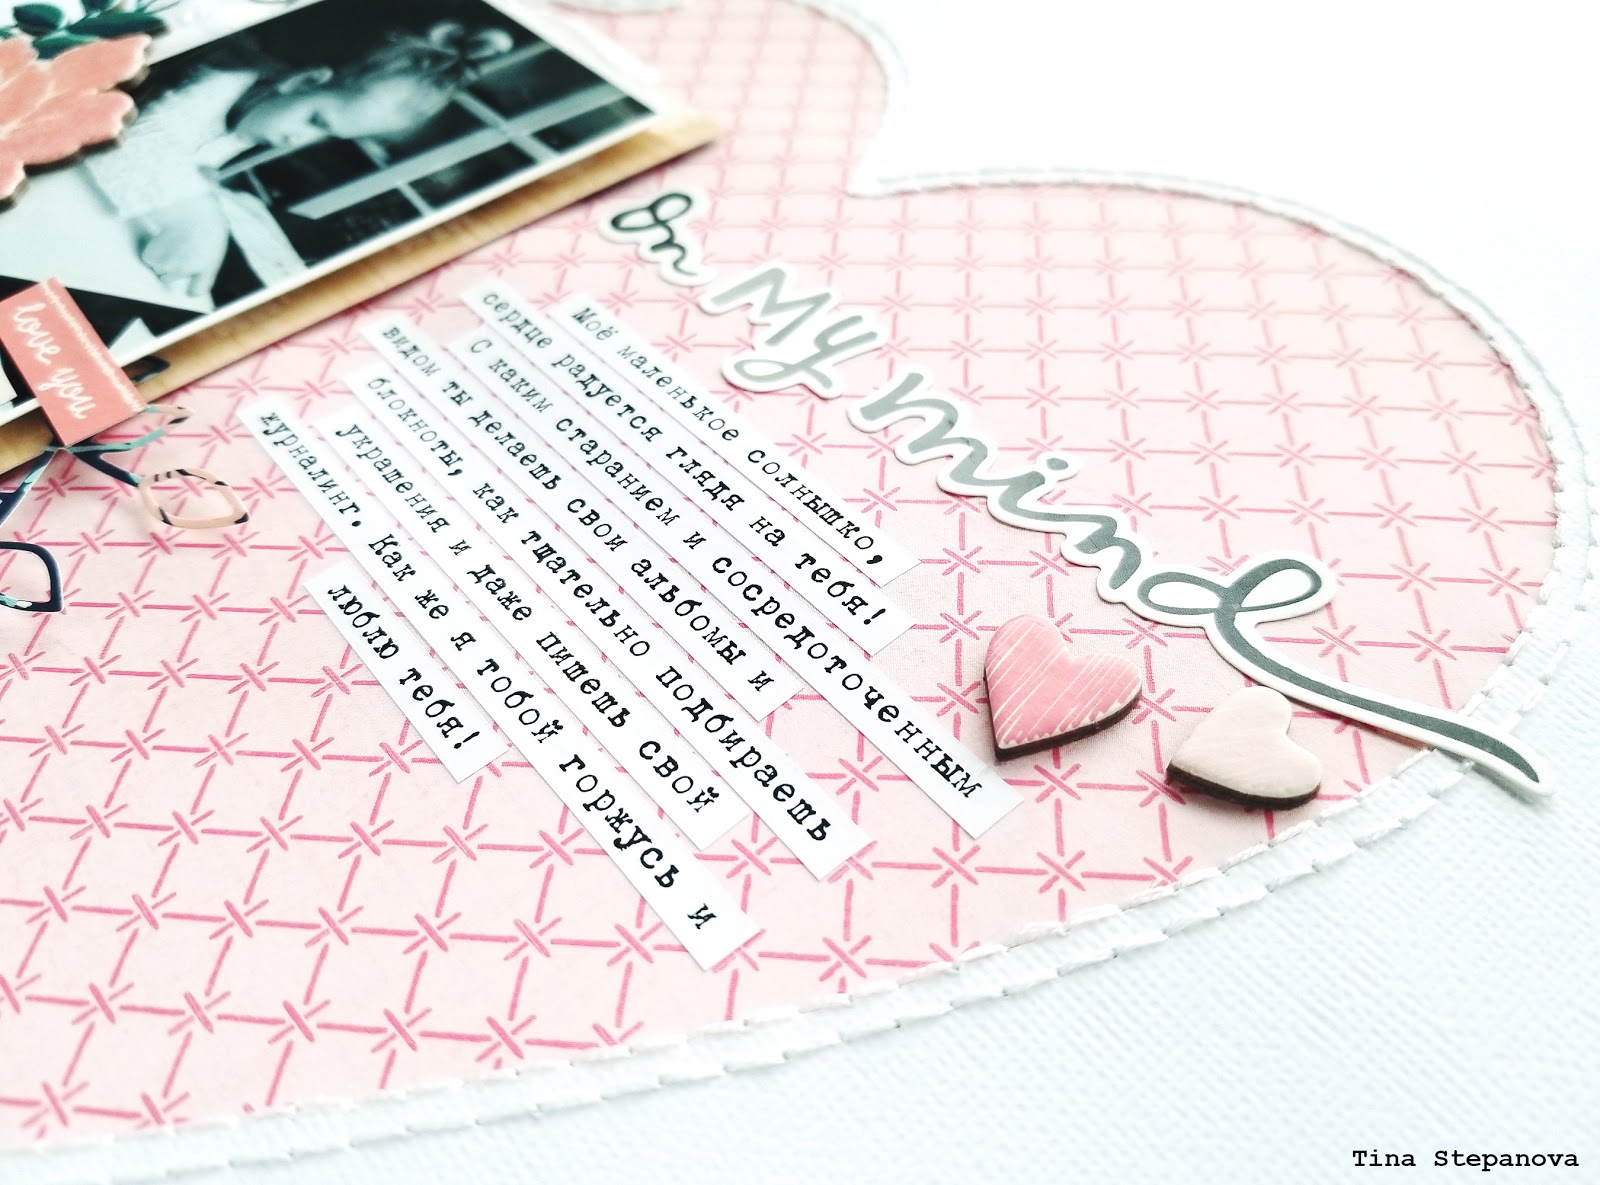 Scrapbook Layout @happytin4ik #scrapbook #scrapbooklayout #cratepaper #cratepaperwillowlane